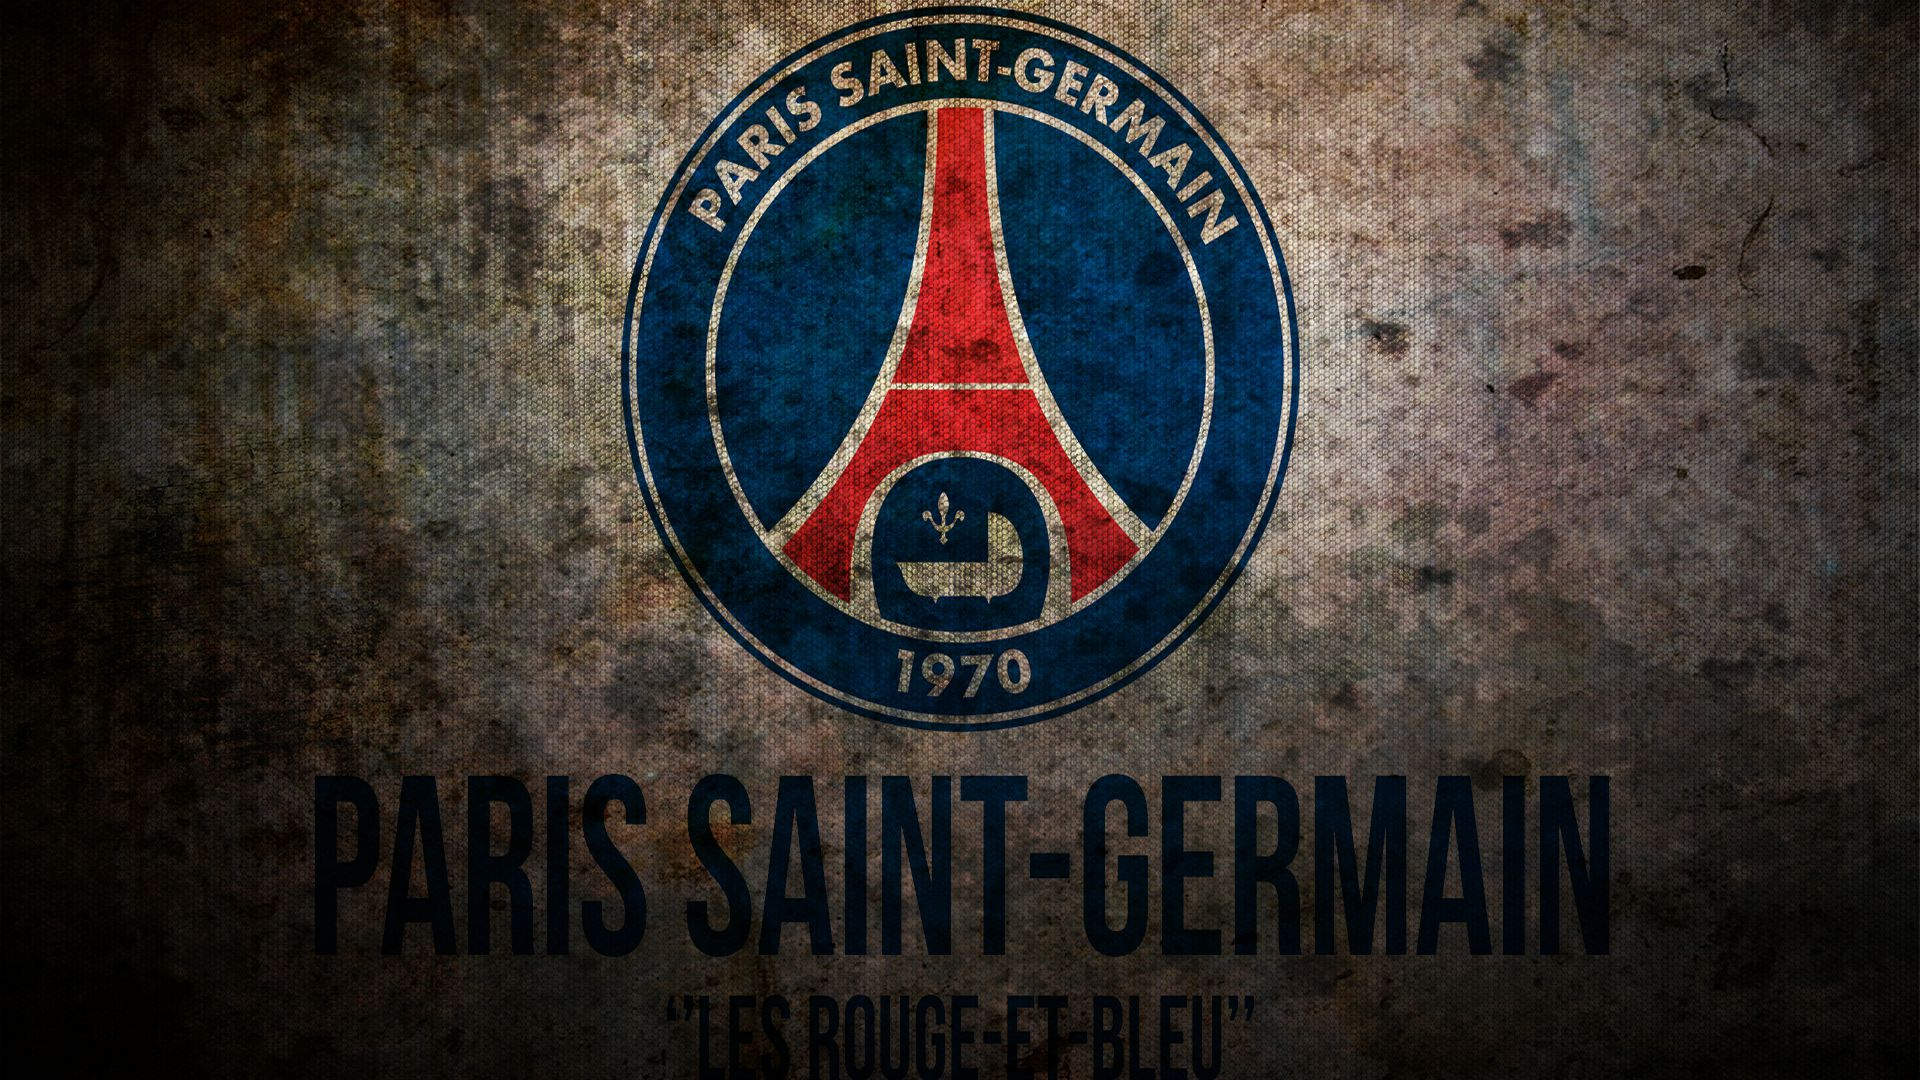 [47+] Paris Saint Germain Wallpaper on WallpaperSafari